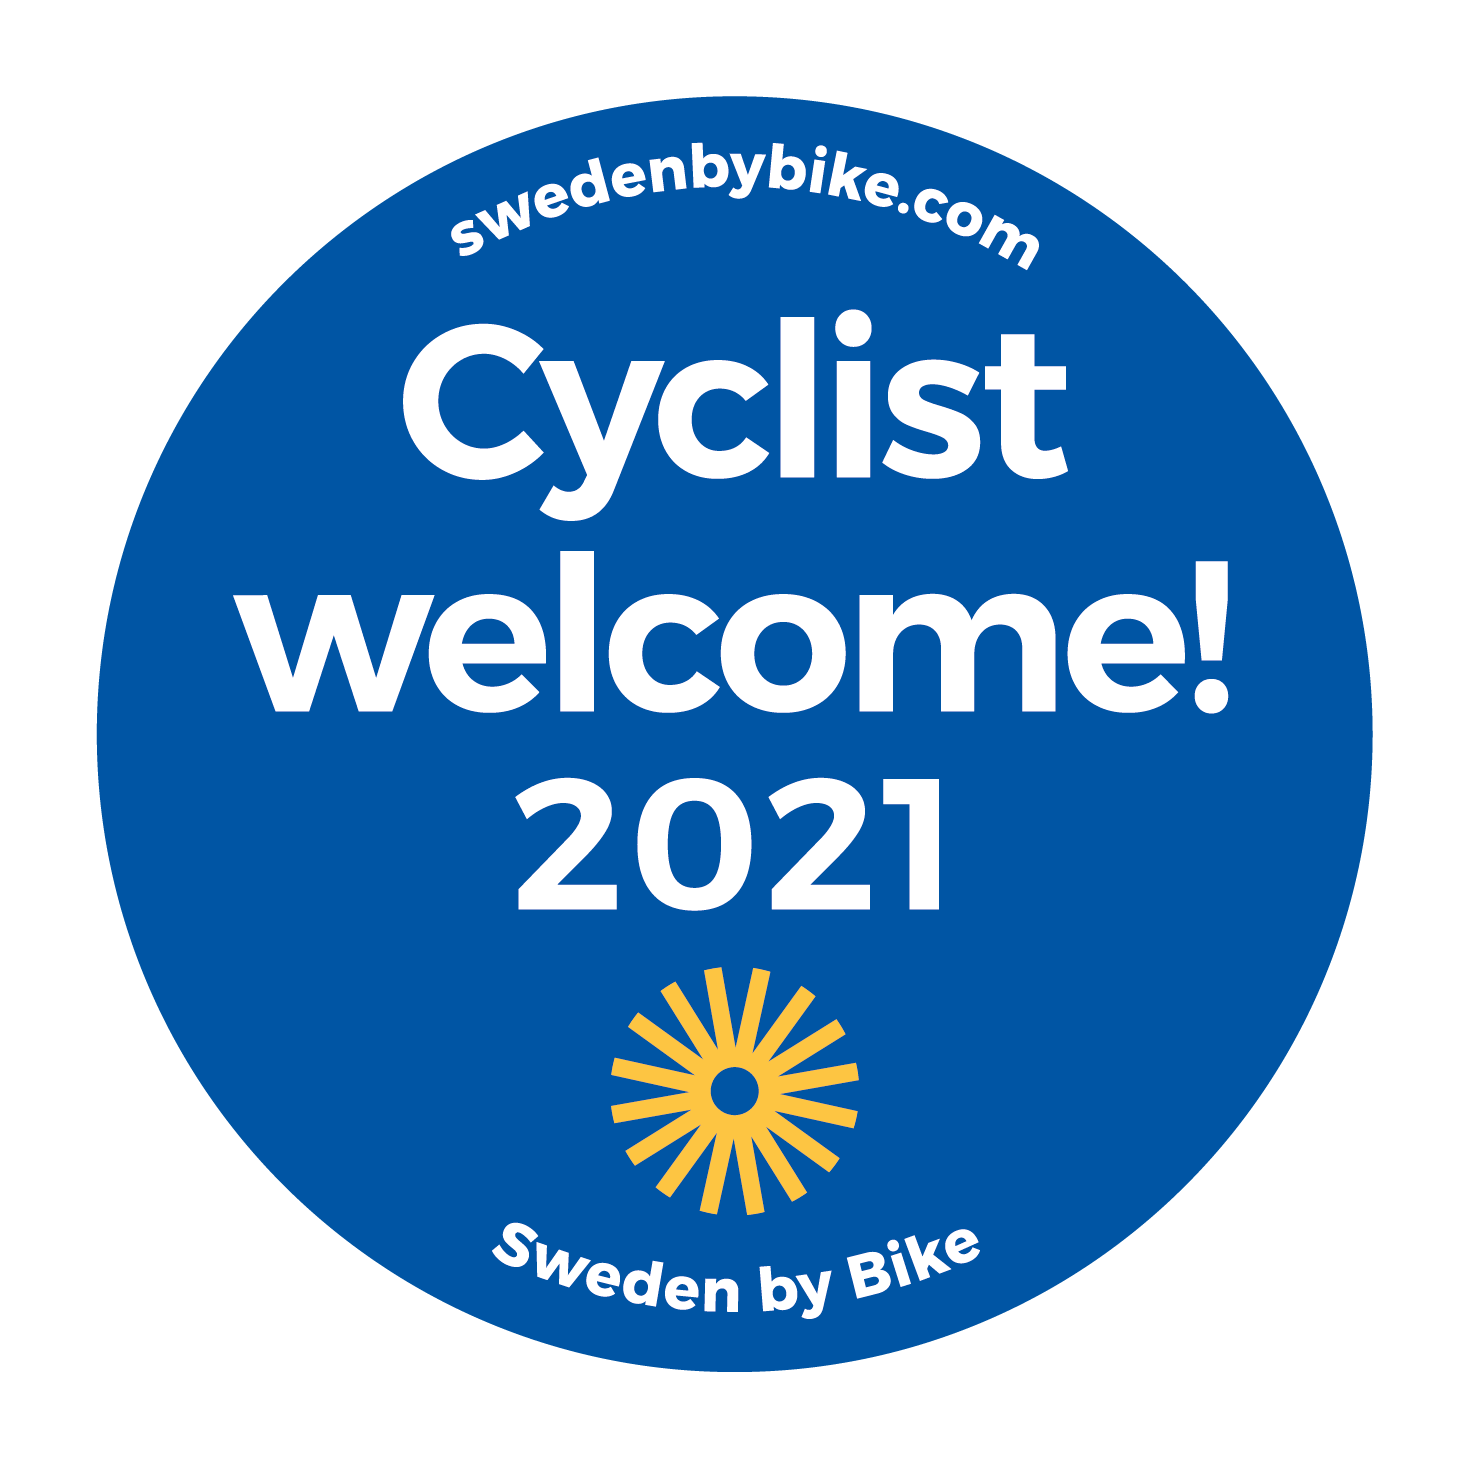 Cyclist welcome!